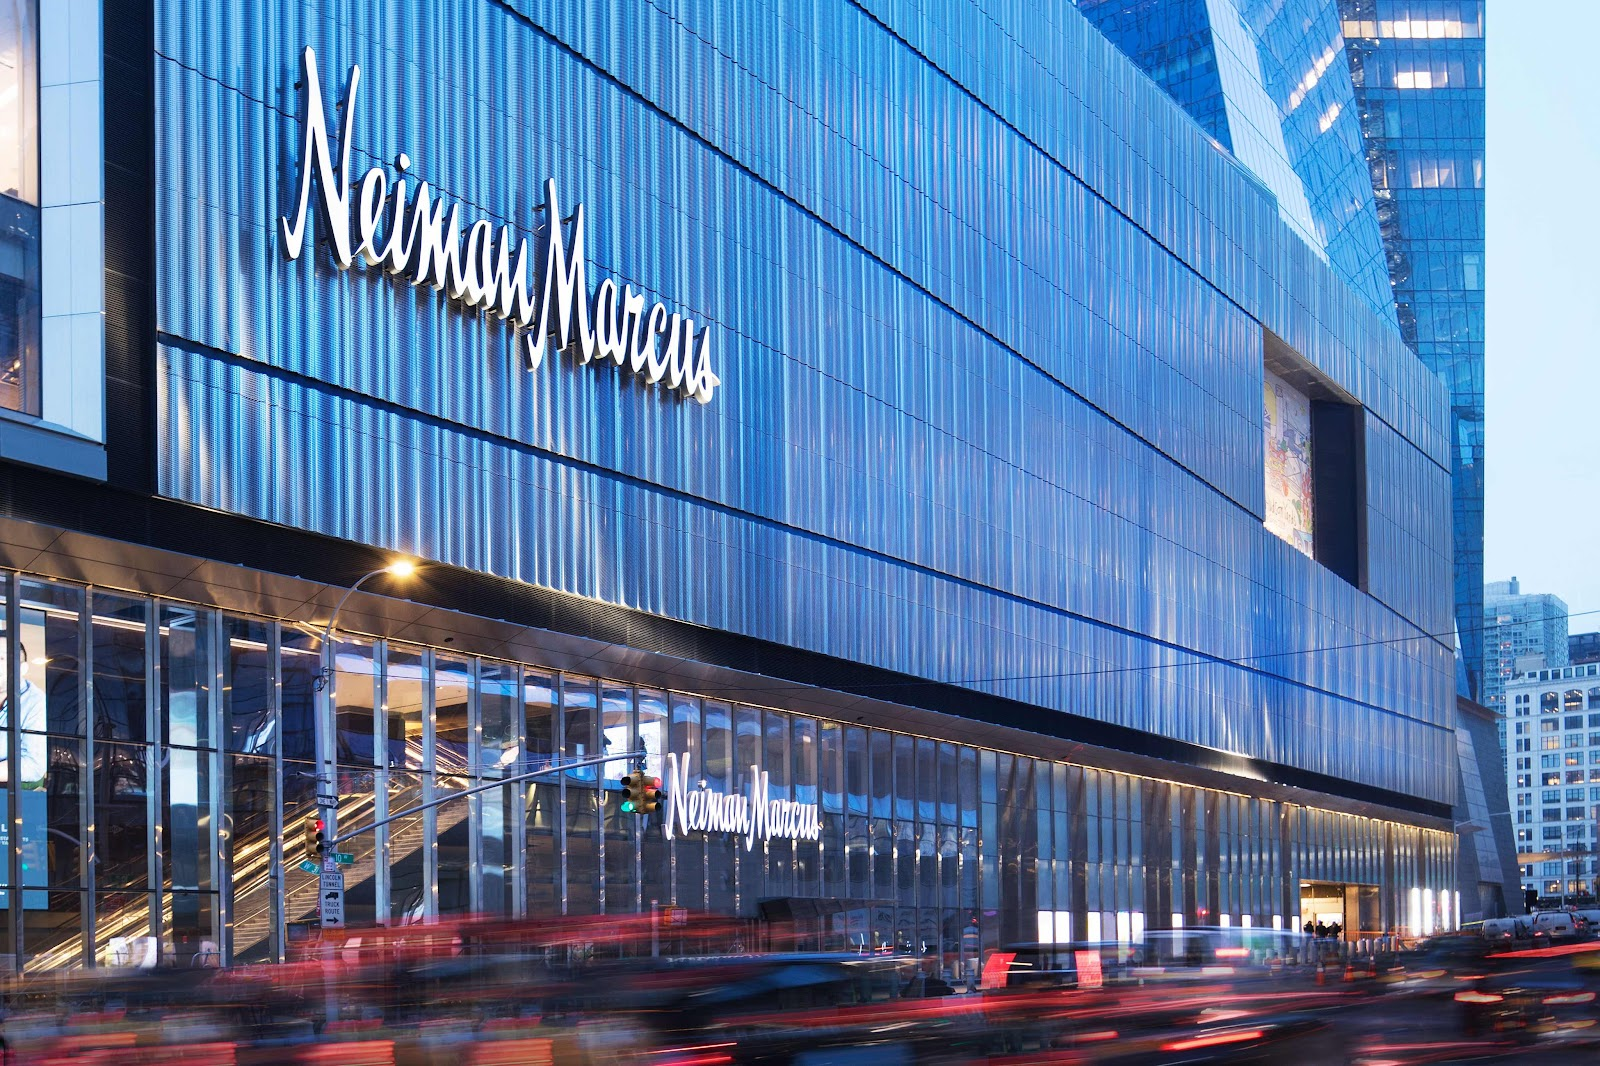 Neiman Marcus to File for Bankruptcy as Soon as This Week-Sources